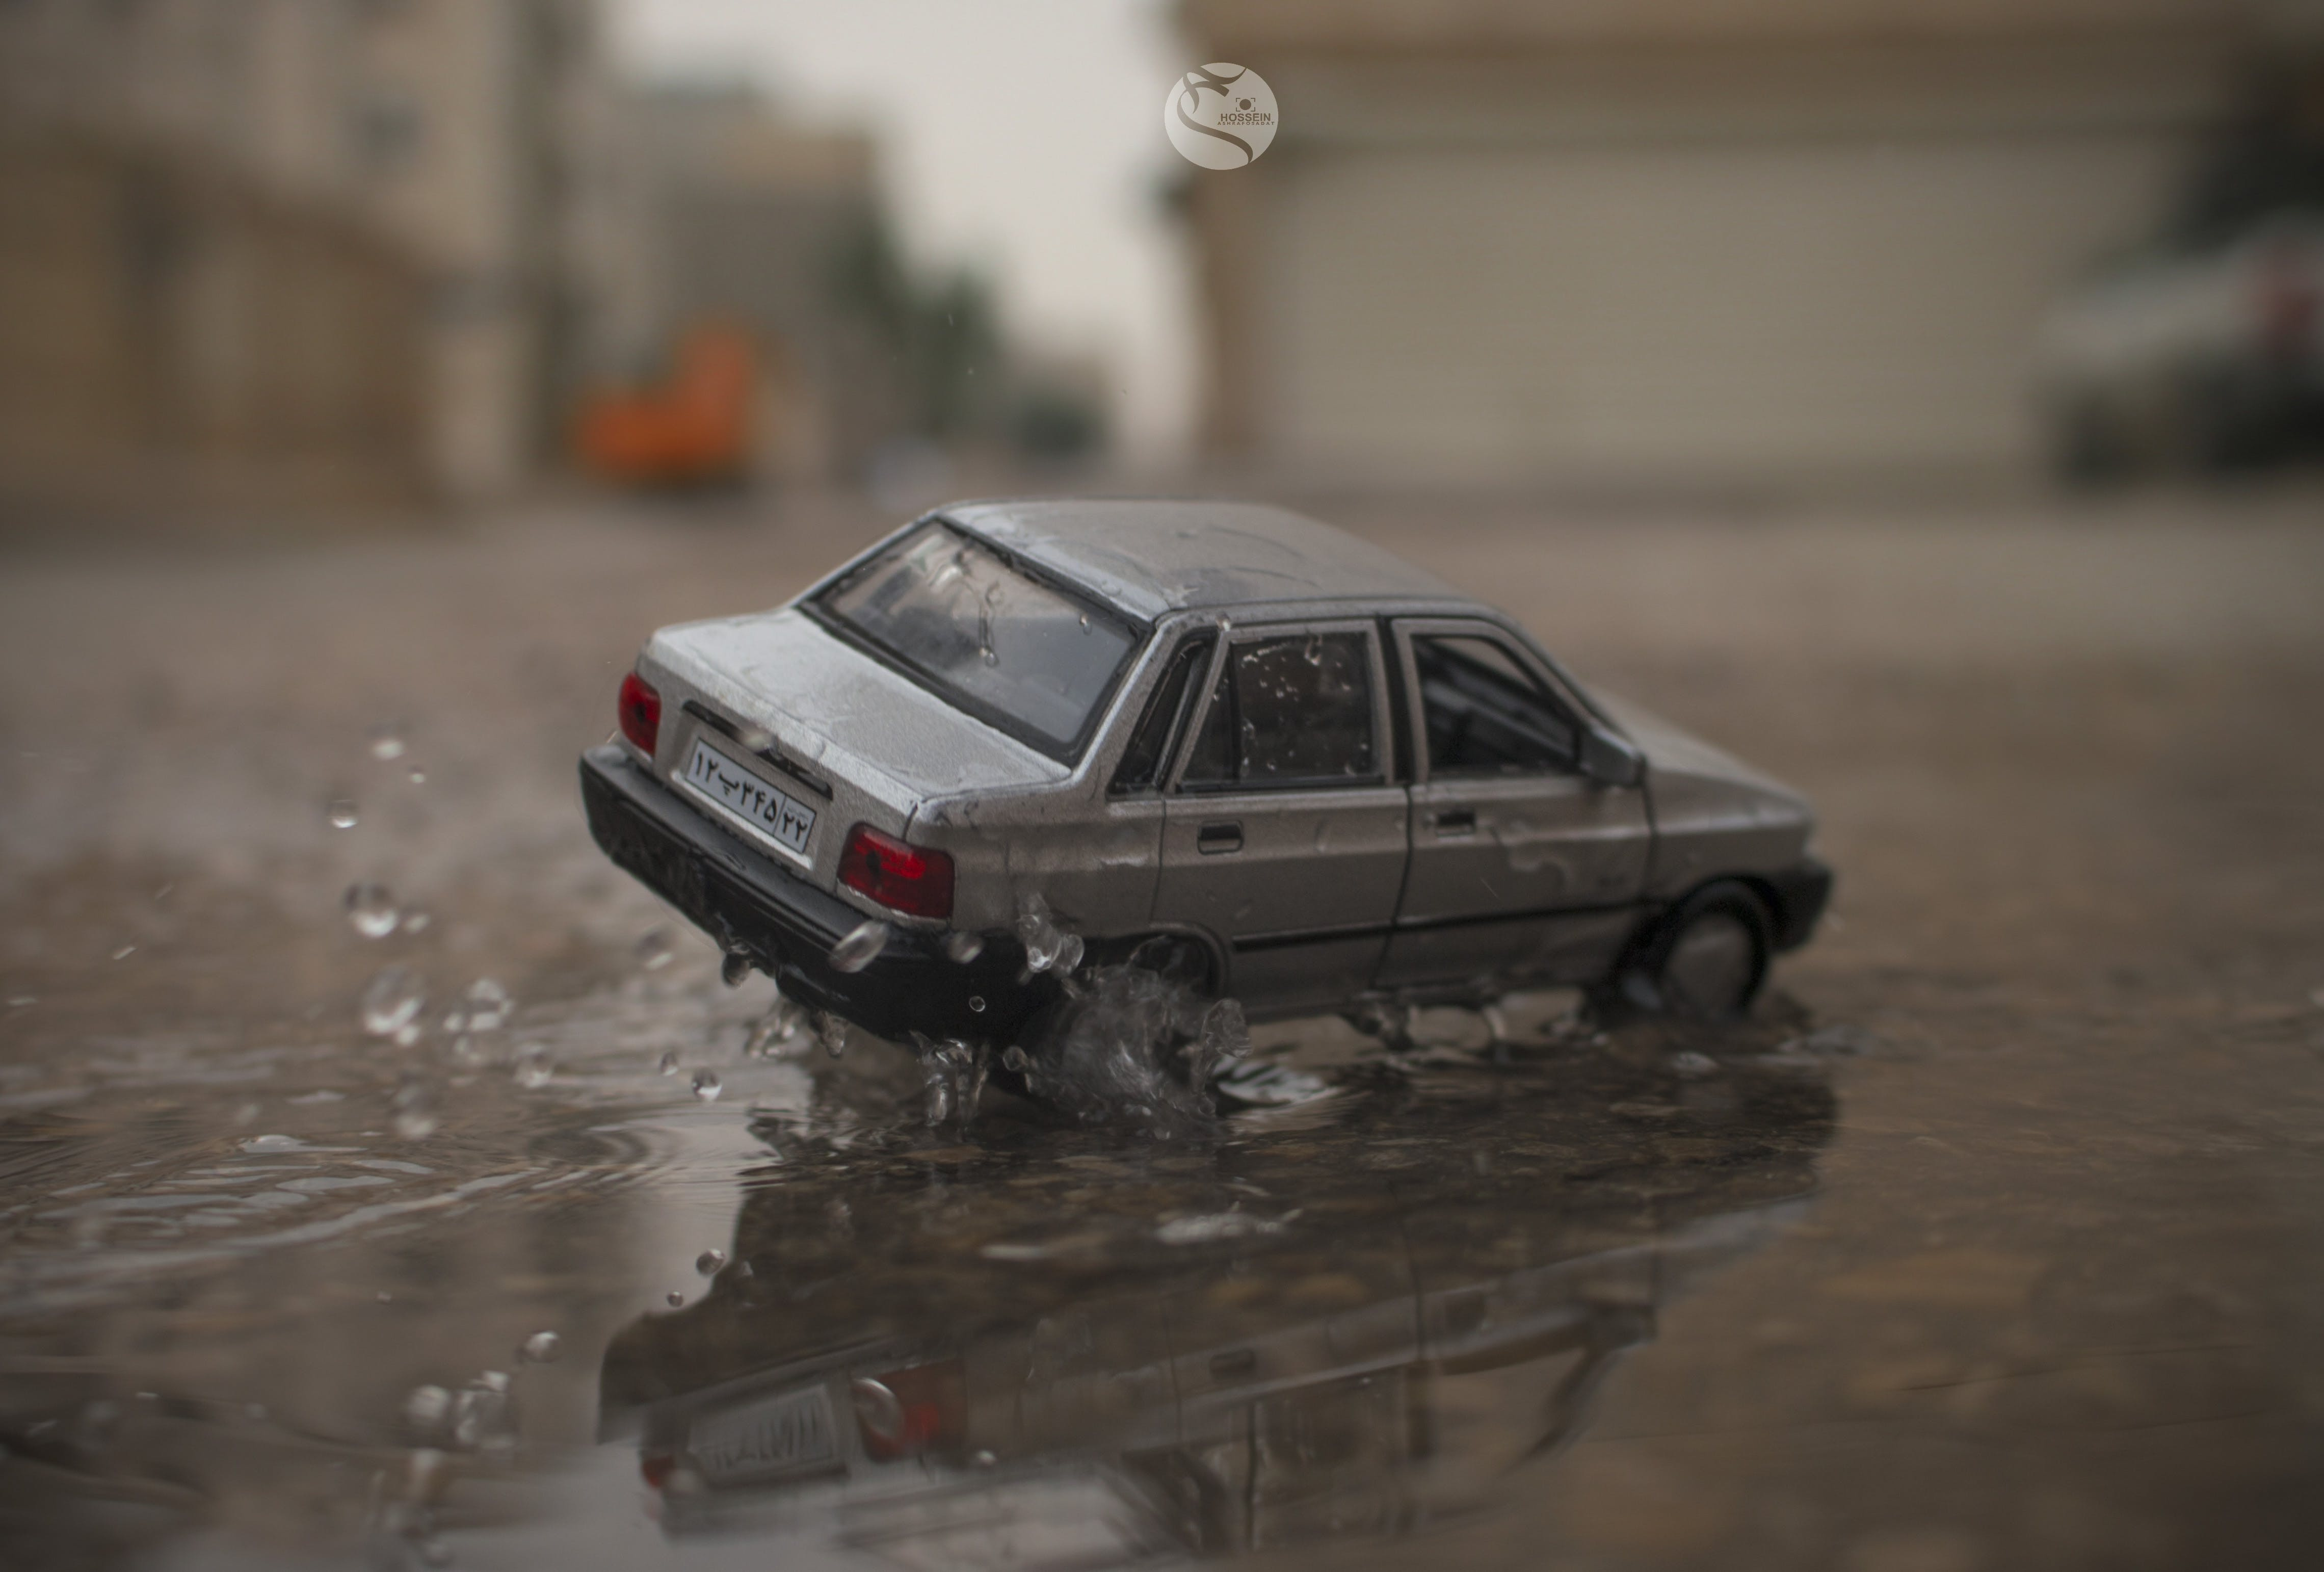 Free stock photo of accident, after the rain, car, korea